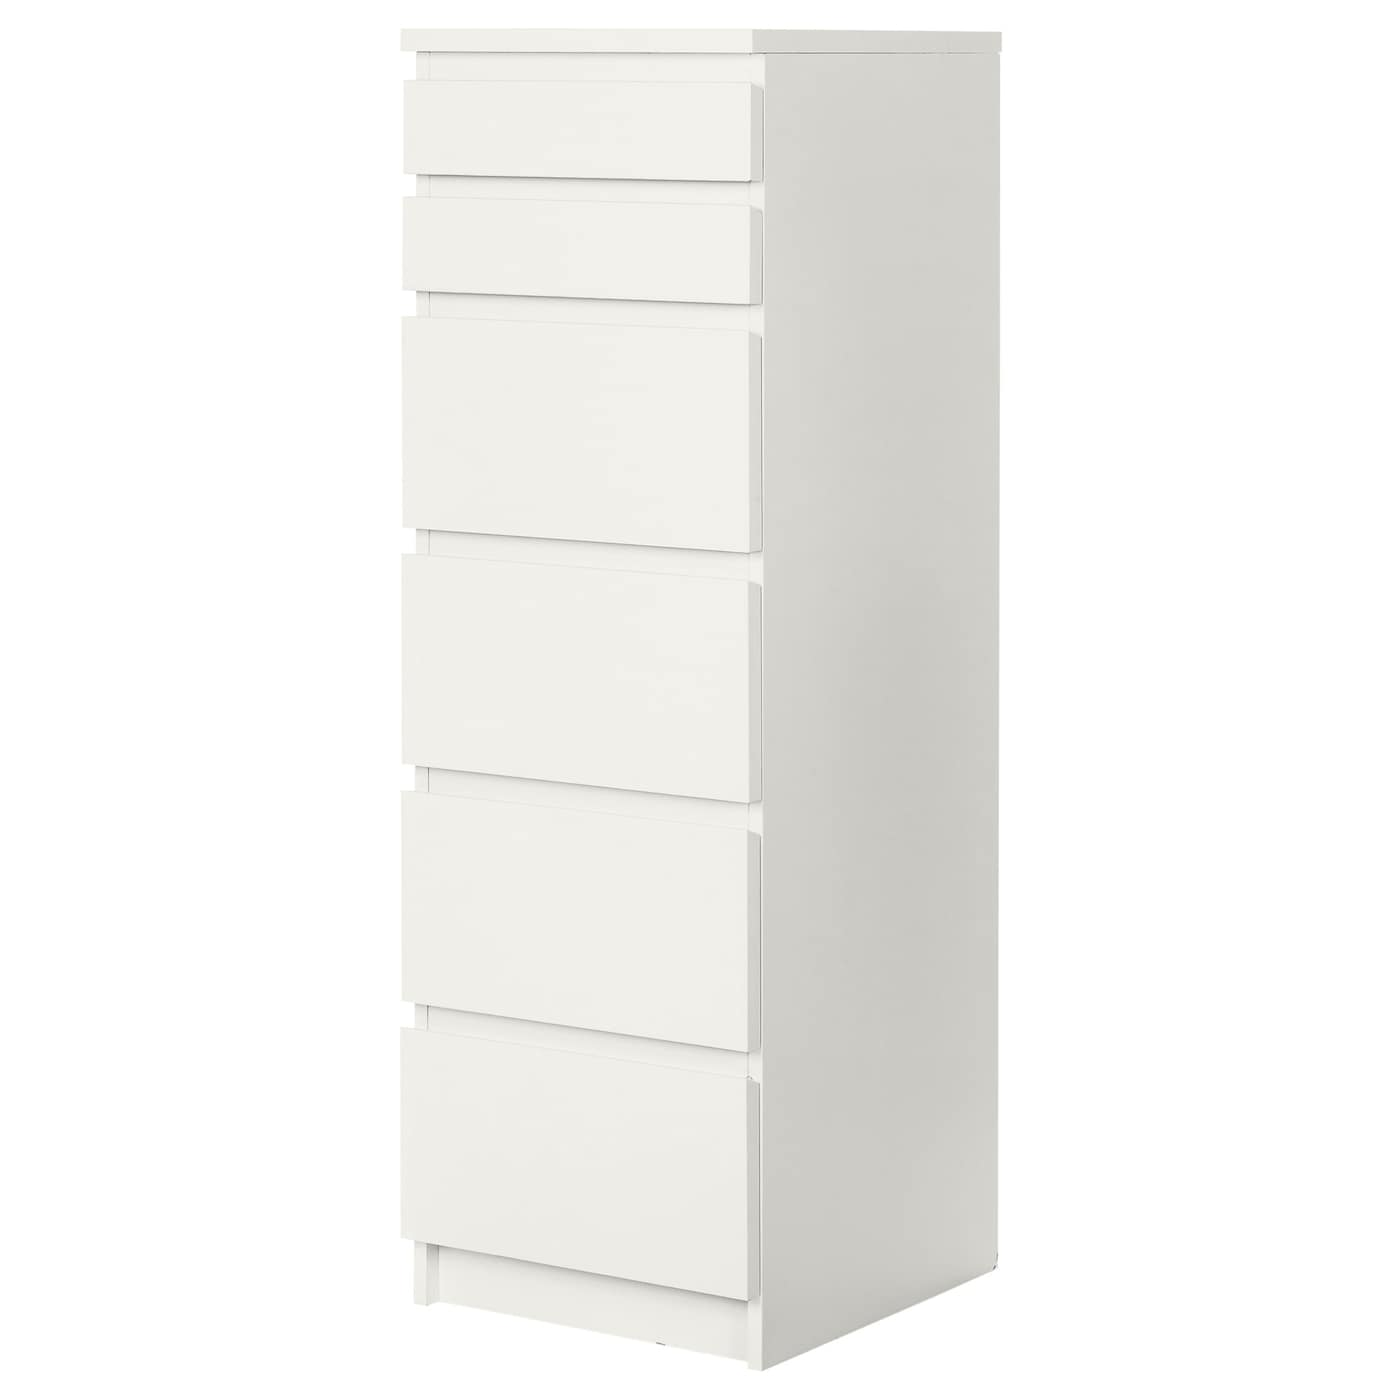 Ikea Malm Chest Of  Drawers Built In Mirror Smooth Running Drawers With Pull